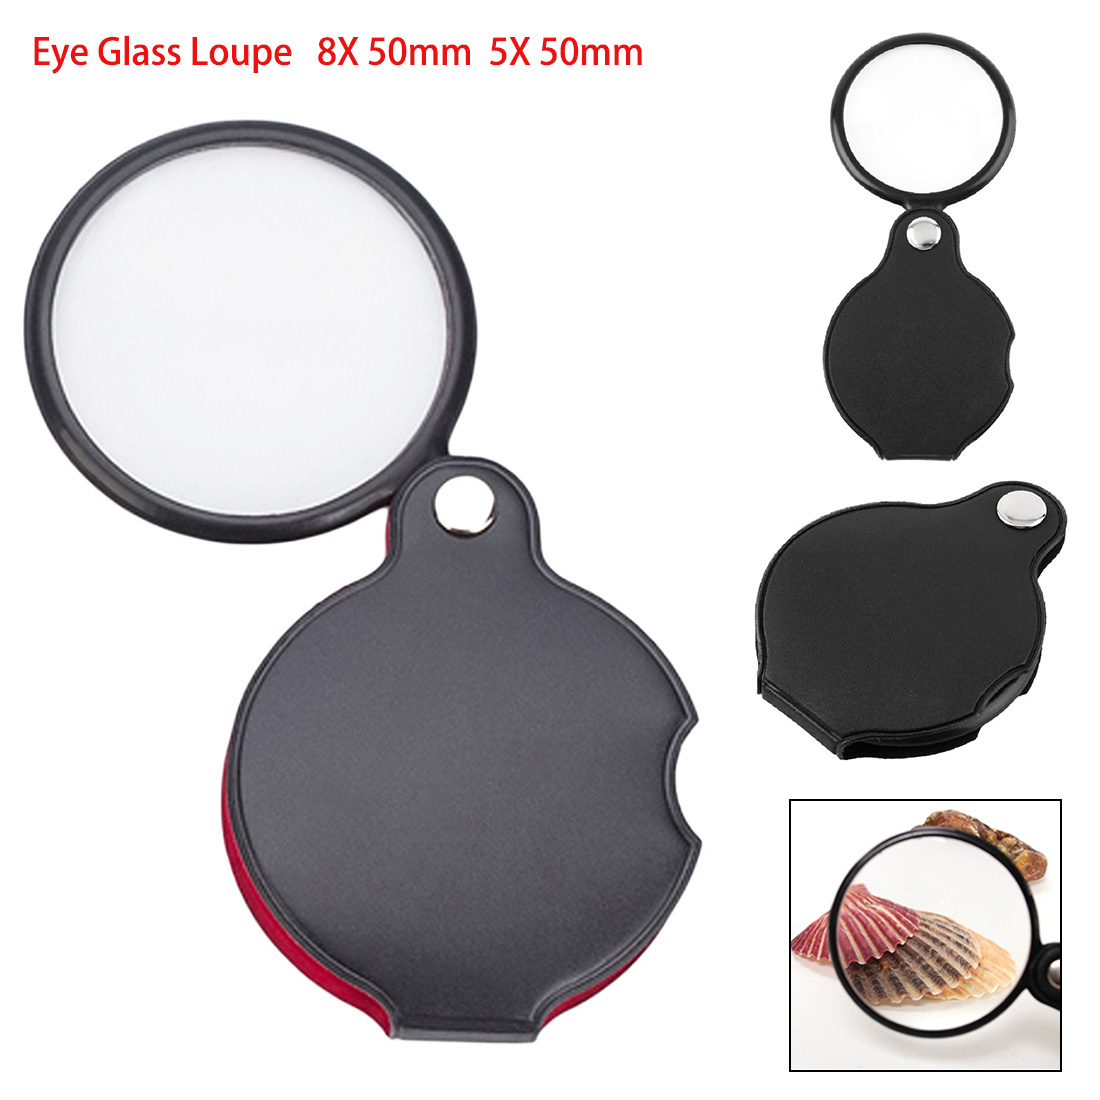 8X 50mm 5X 50mm Mini Pocket Folding Jewelry Magnifier Magnifying Eye Glass Loupe Lens